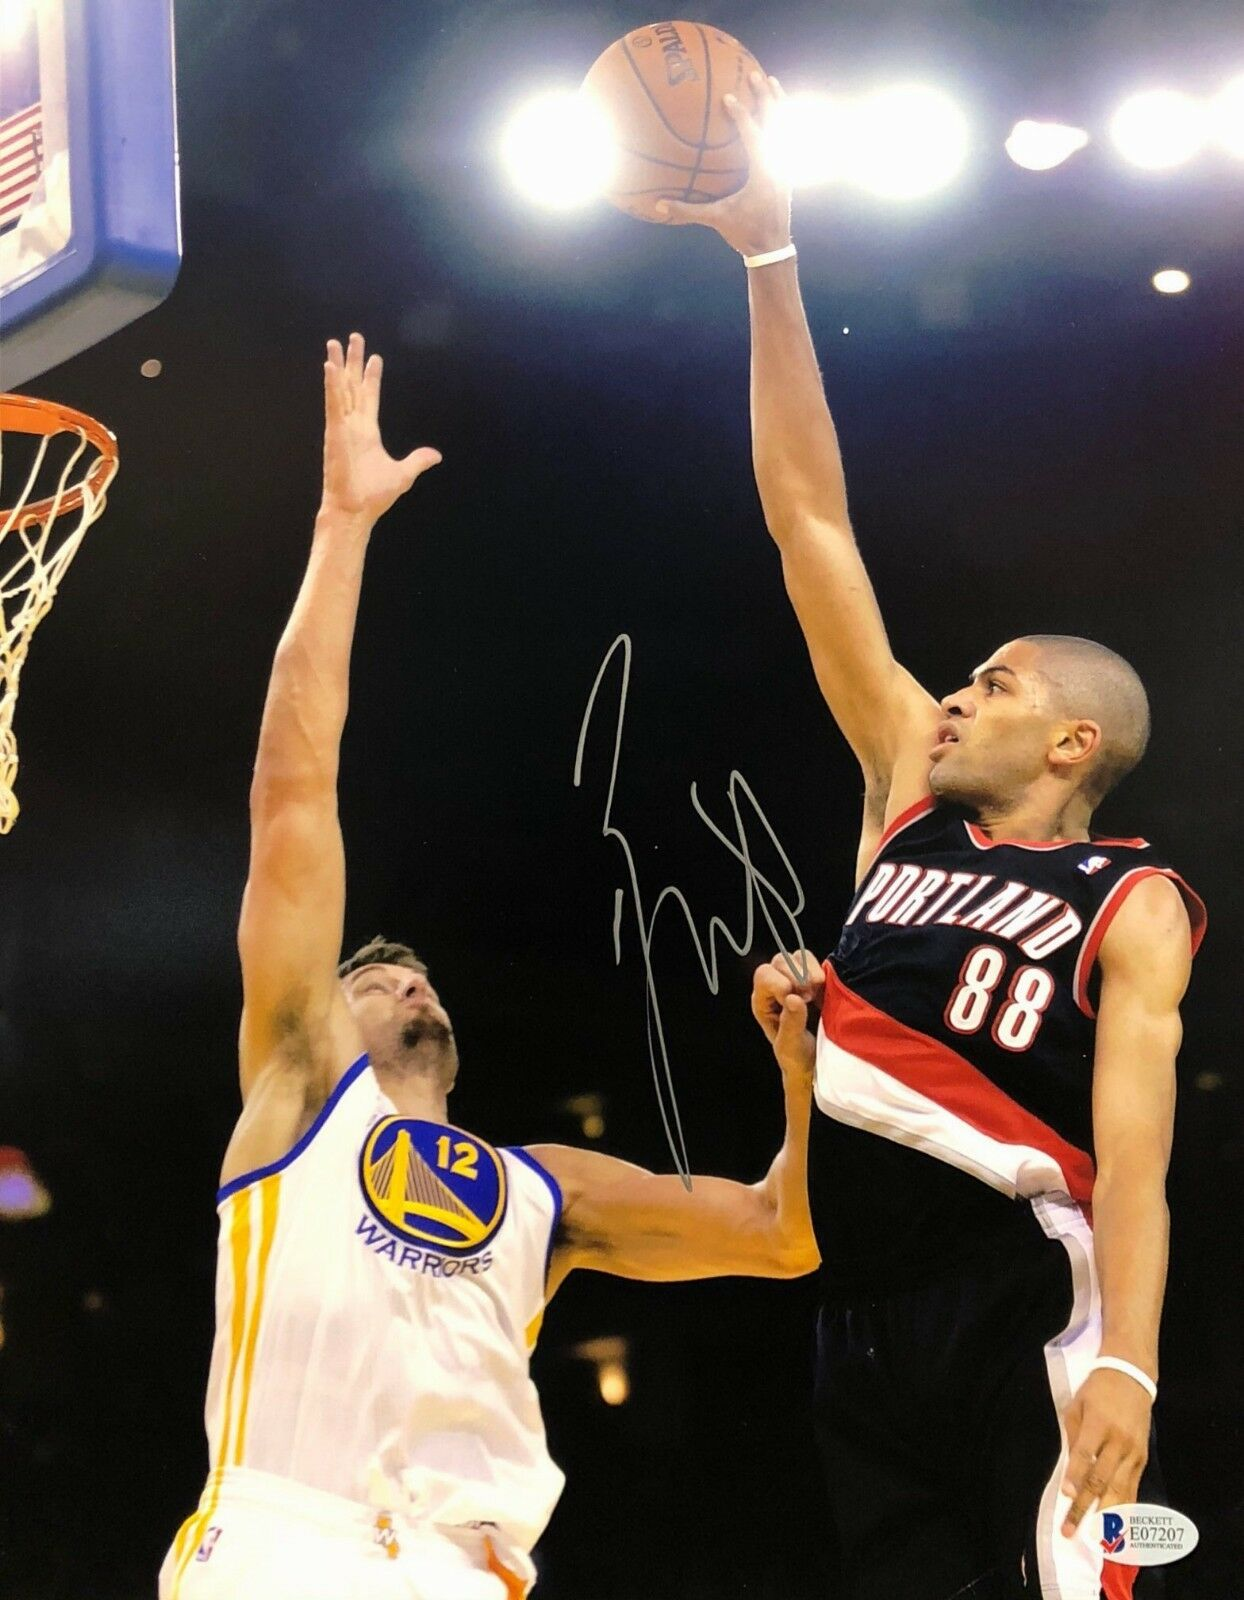 Nicolas Batum Signed Portland Trail Blazers 11x14 Basketball Photo BAS E07207